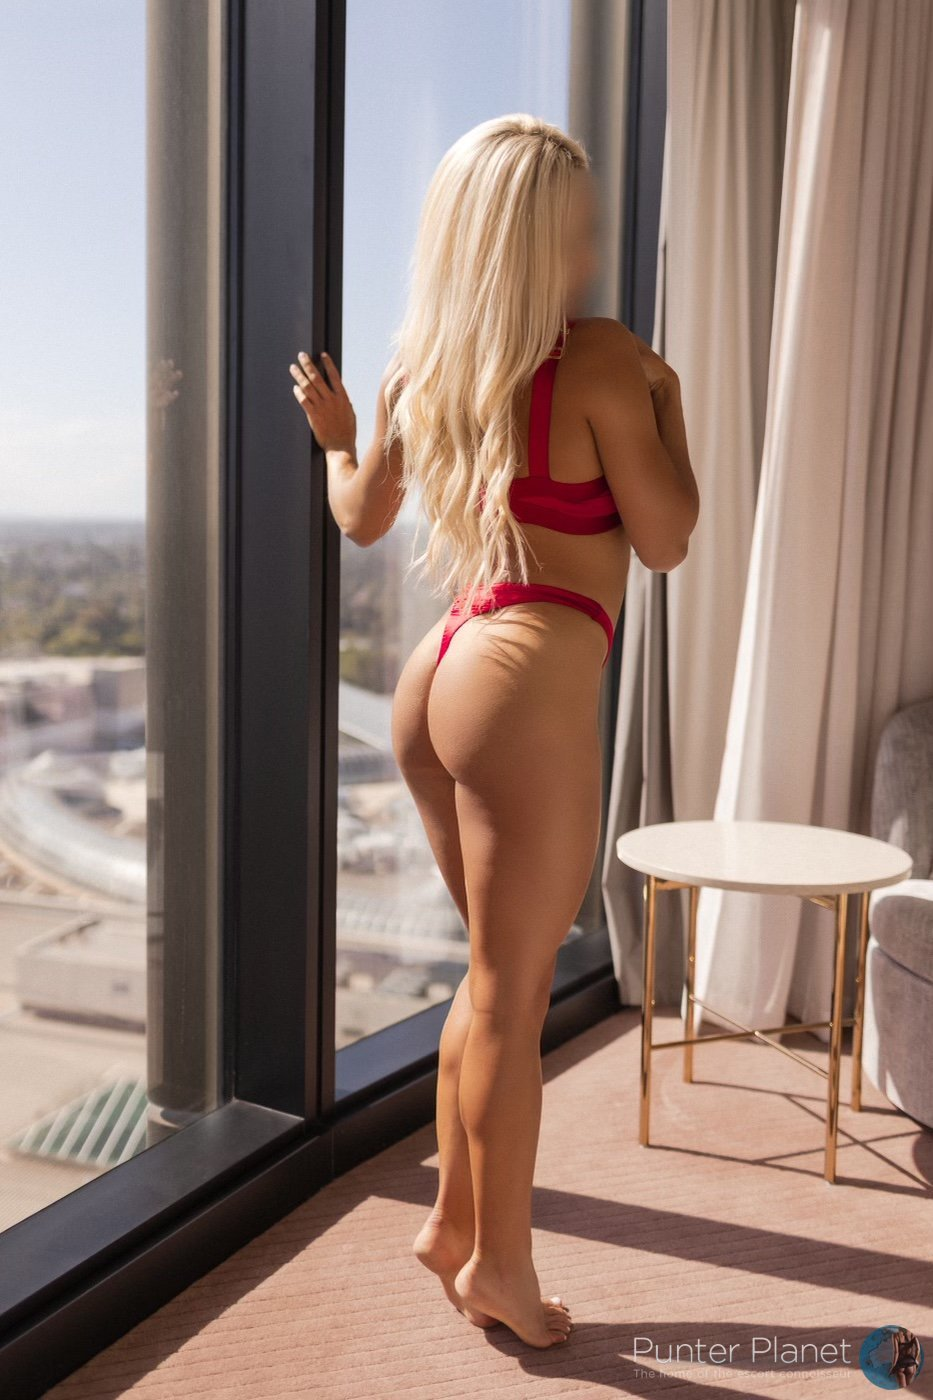 Blonde Escort Ava has arrived in Adelaide